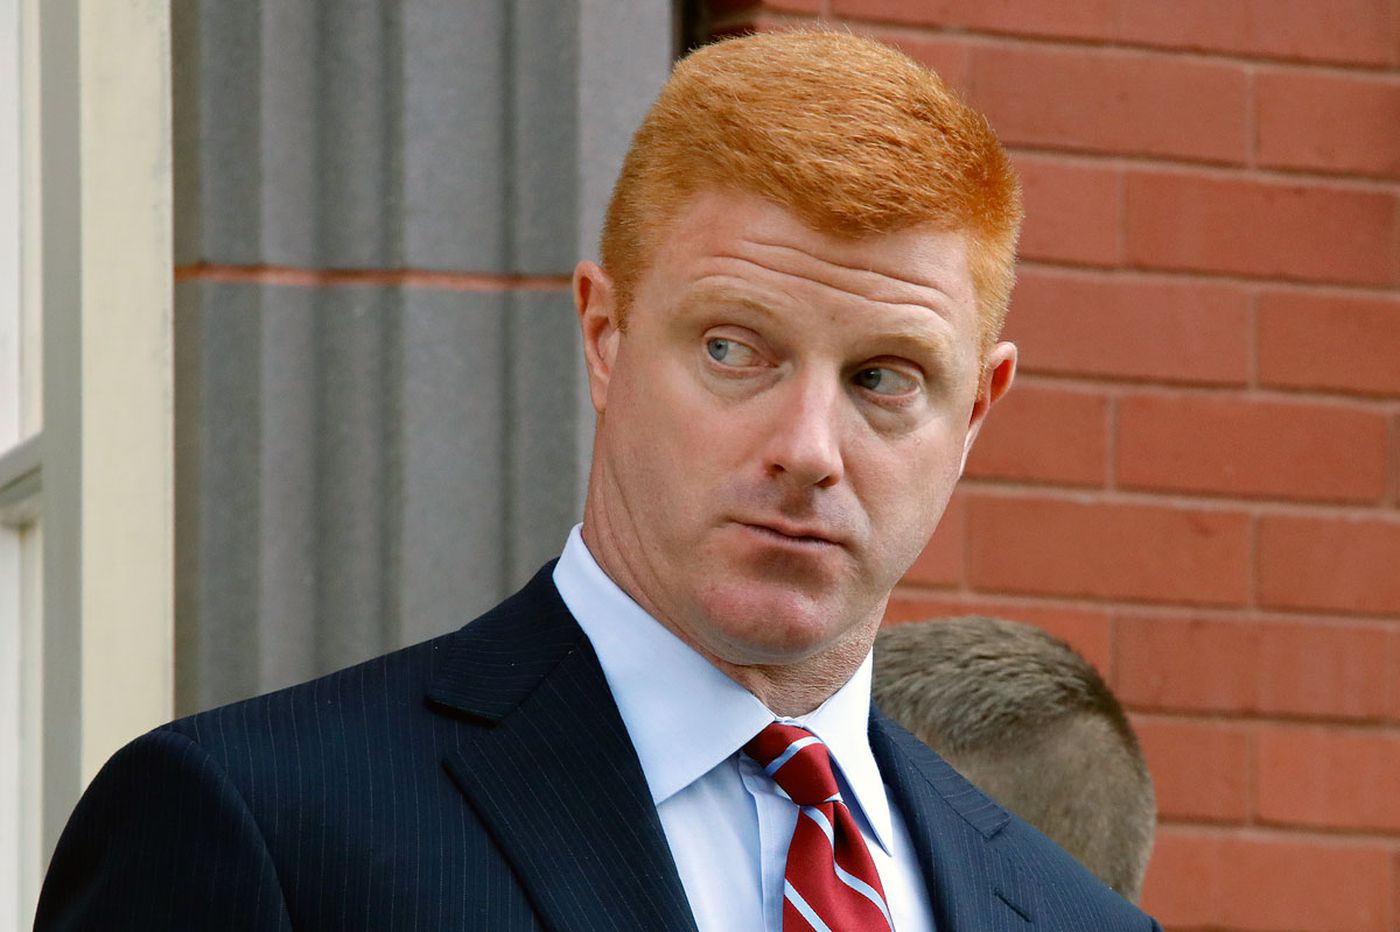 Jury orders Penn State to pay McQueary $7.3 million